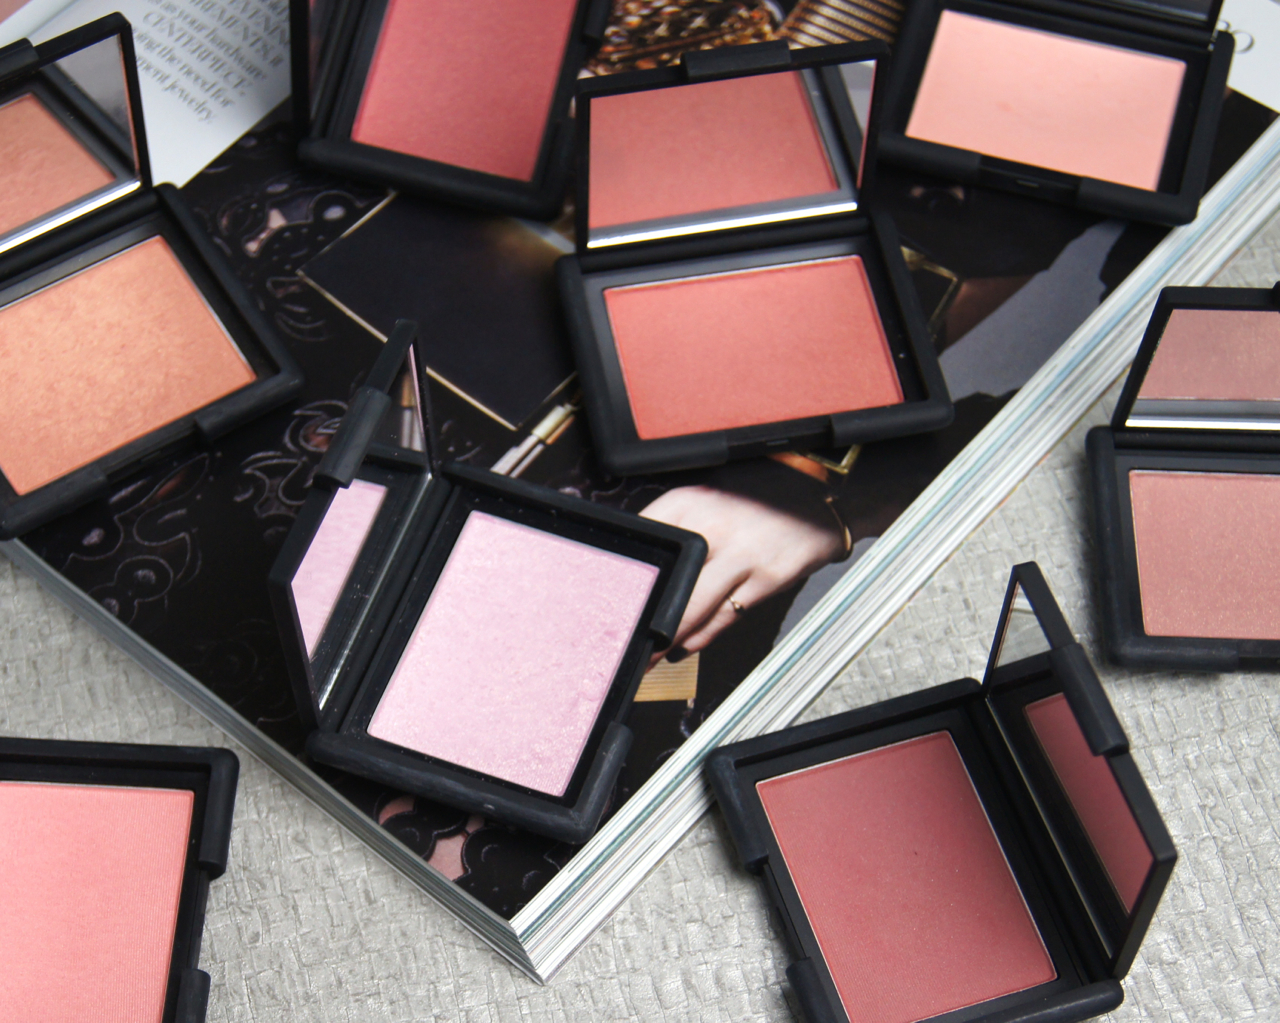 nars powder blush collection review swatches alicegracebeauty uk beauty blog. Black Bedroom Furniture Sets. Home Design Ideas